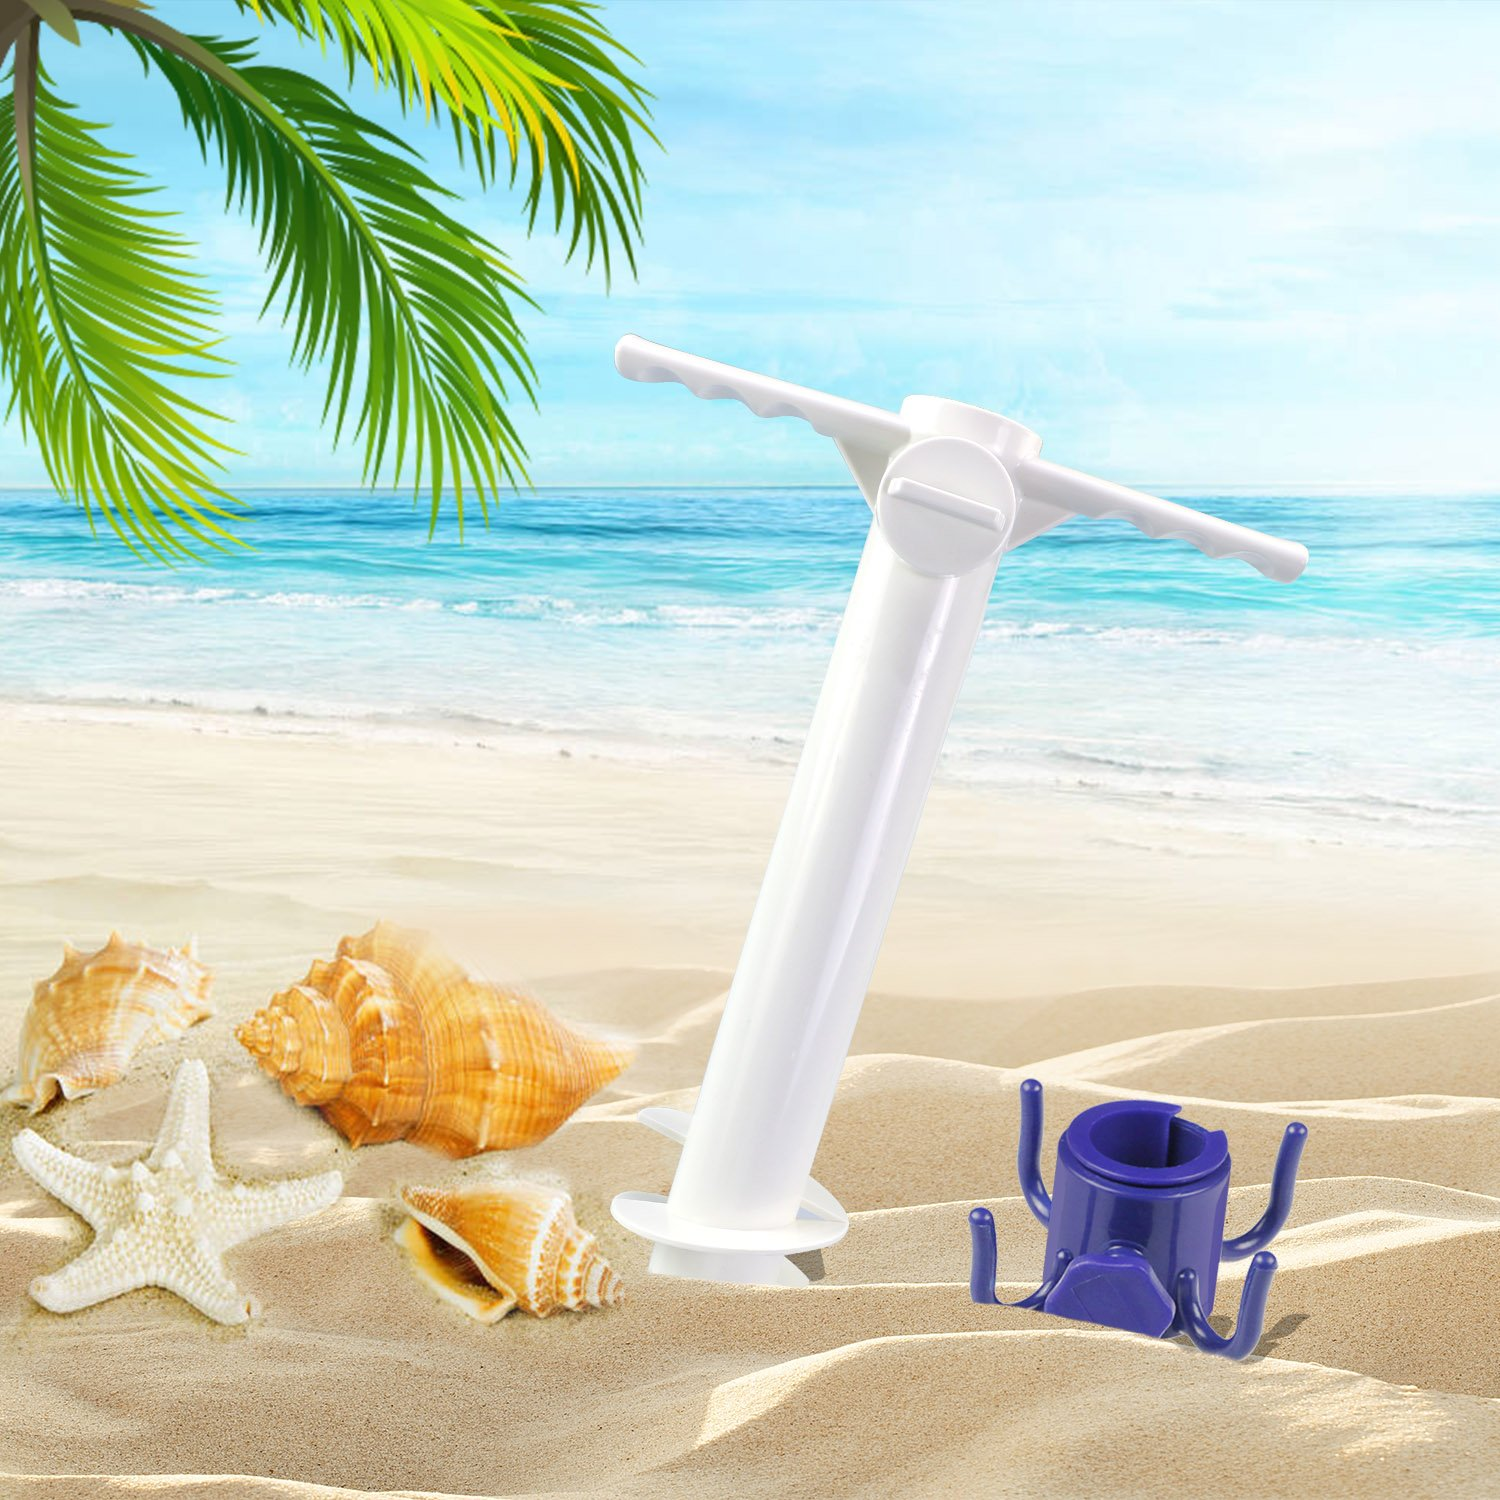 Homga Beach Umbrella Sand Anchor, Heavy Duty Umbrella Holder-Stands, Comes with Beach Umbrella Hanging Hook, One Size Fits All for Strong Winds